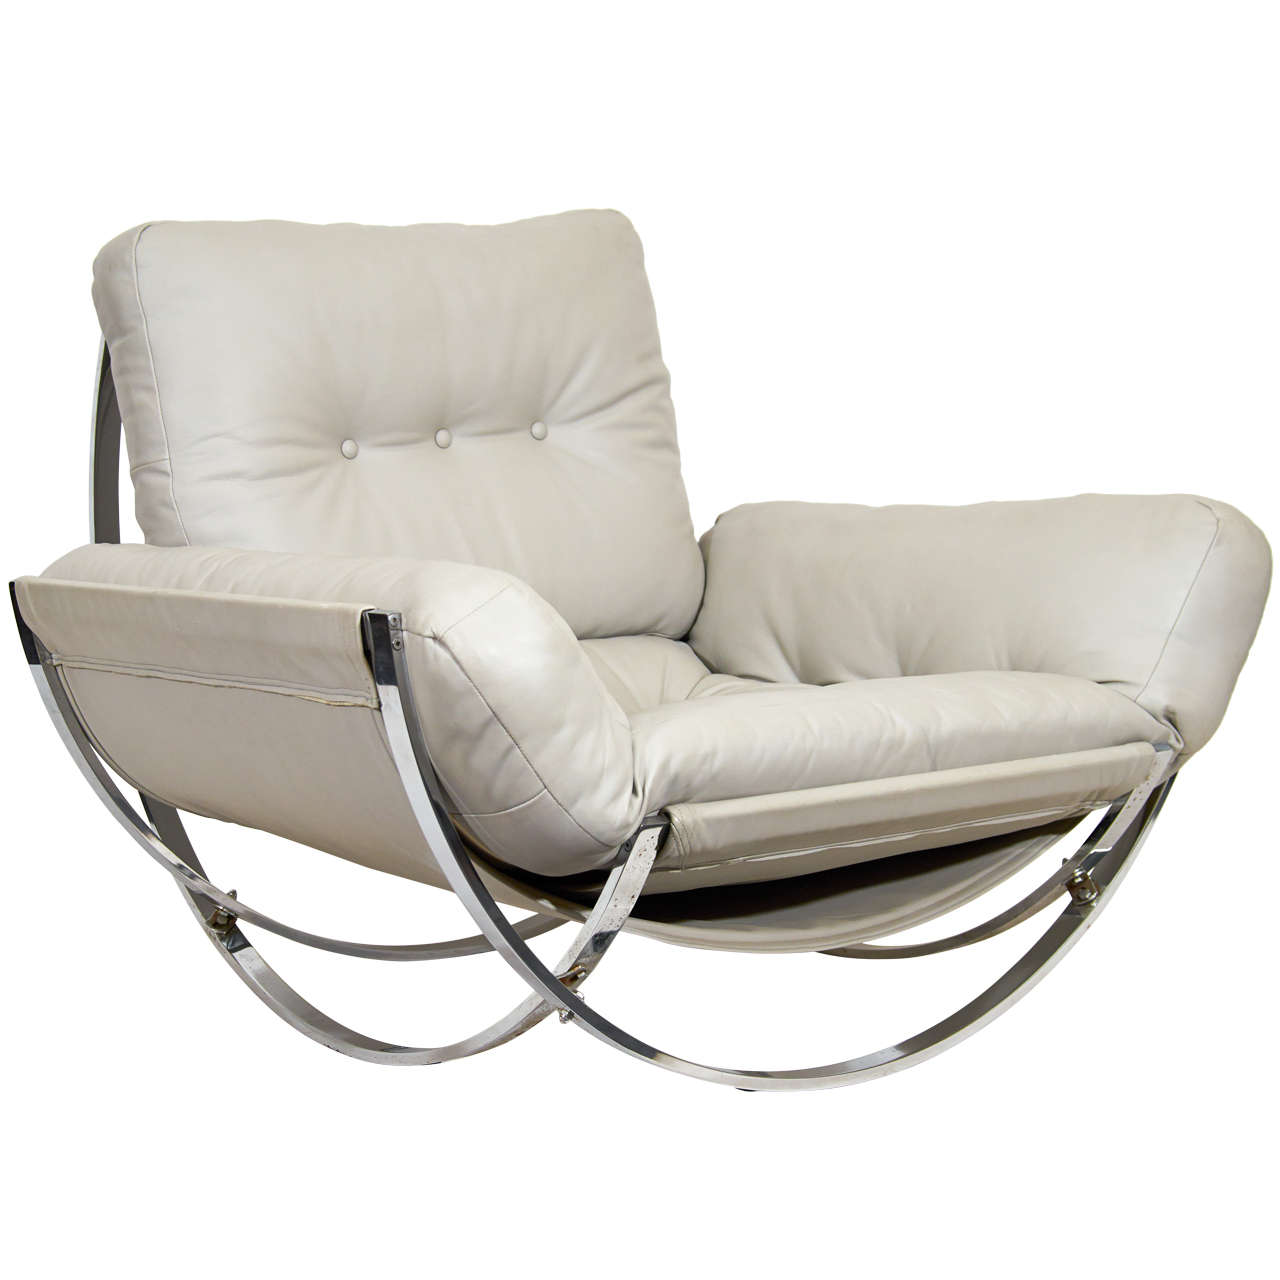 leather and chrome chairs wood chair plans sculptural italian lounge for